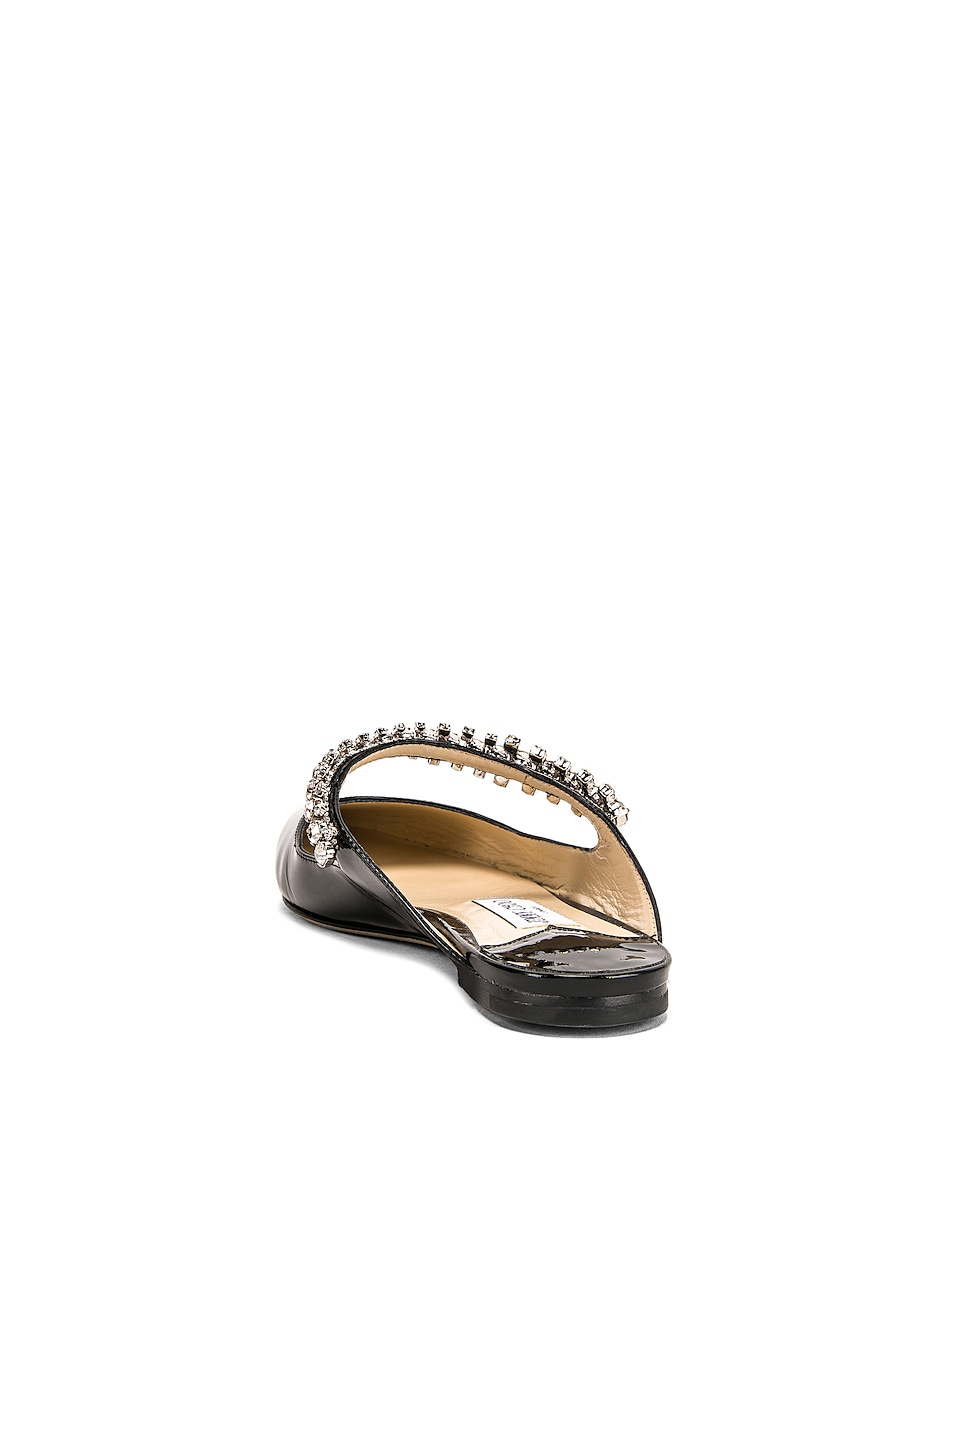 Image 3 of Jimmy Choo Bing Patent Leather Flat in Black